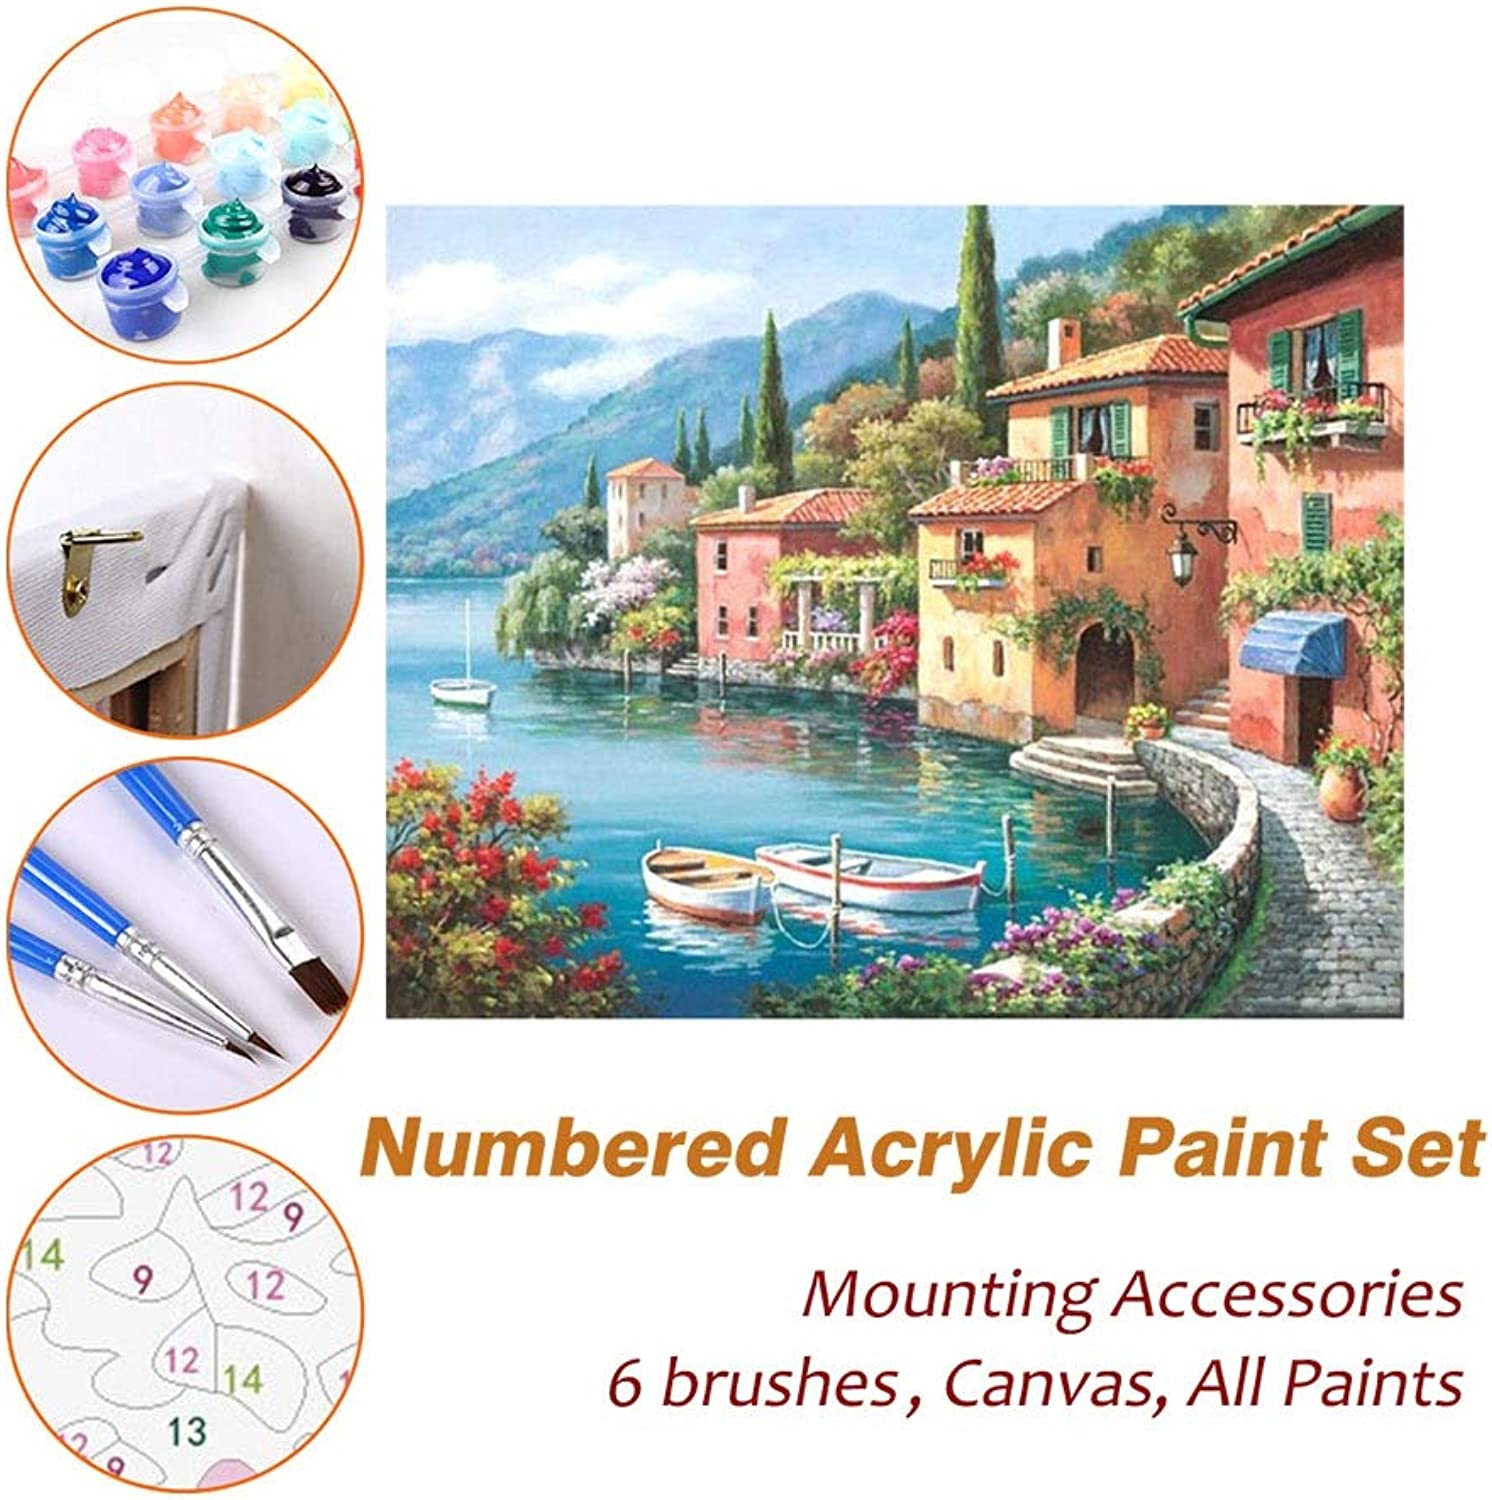 Puzzle House Paint Max Acrylic Oil Painting Paint By Numbers Kits Sets with Frame For Kids Adults Beginner Artist, Harbor Village DIY Wall Art Picture Photography Brush Supplies 611